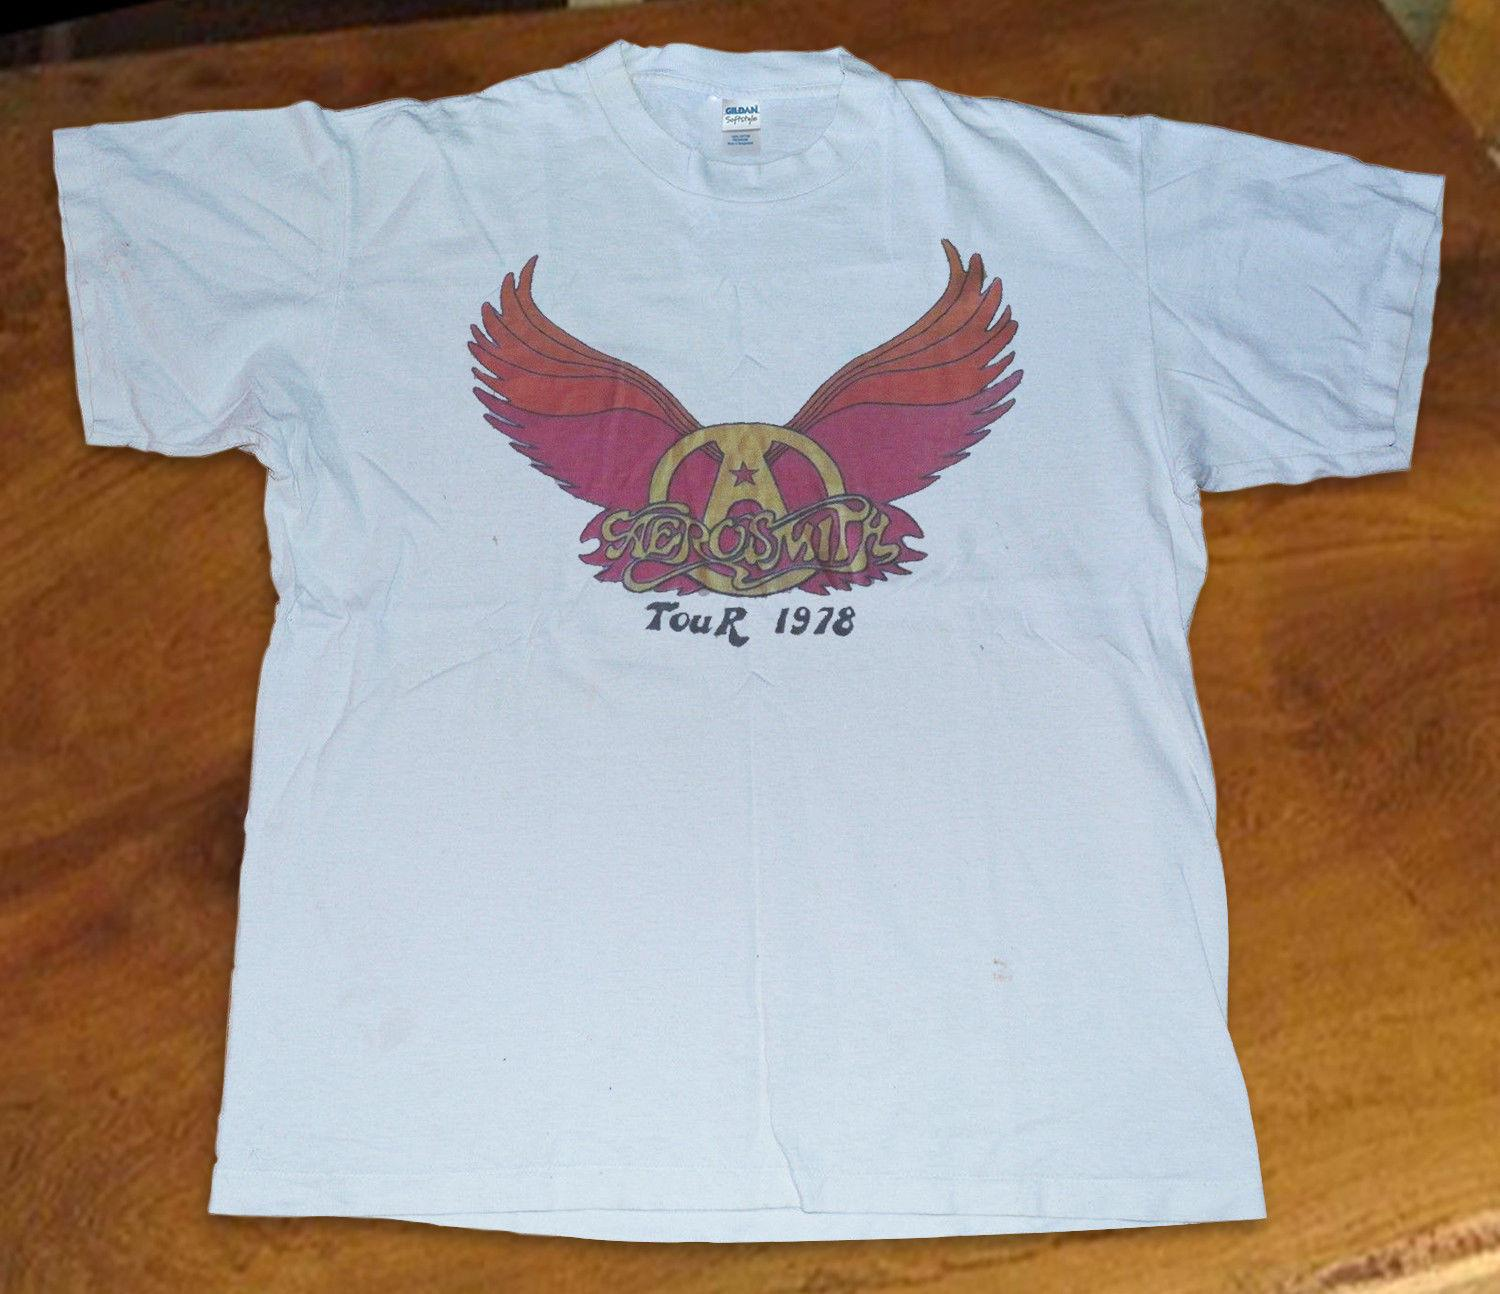 f009b86cc Vintage T Shirt Aerosmith Vintage 1978 Concert Tour Reprint Size S 3XL  Ridiculous T Shirts One Day T Shirts From Goodluck064, $11.63| DHgate.Com